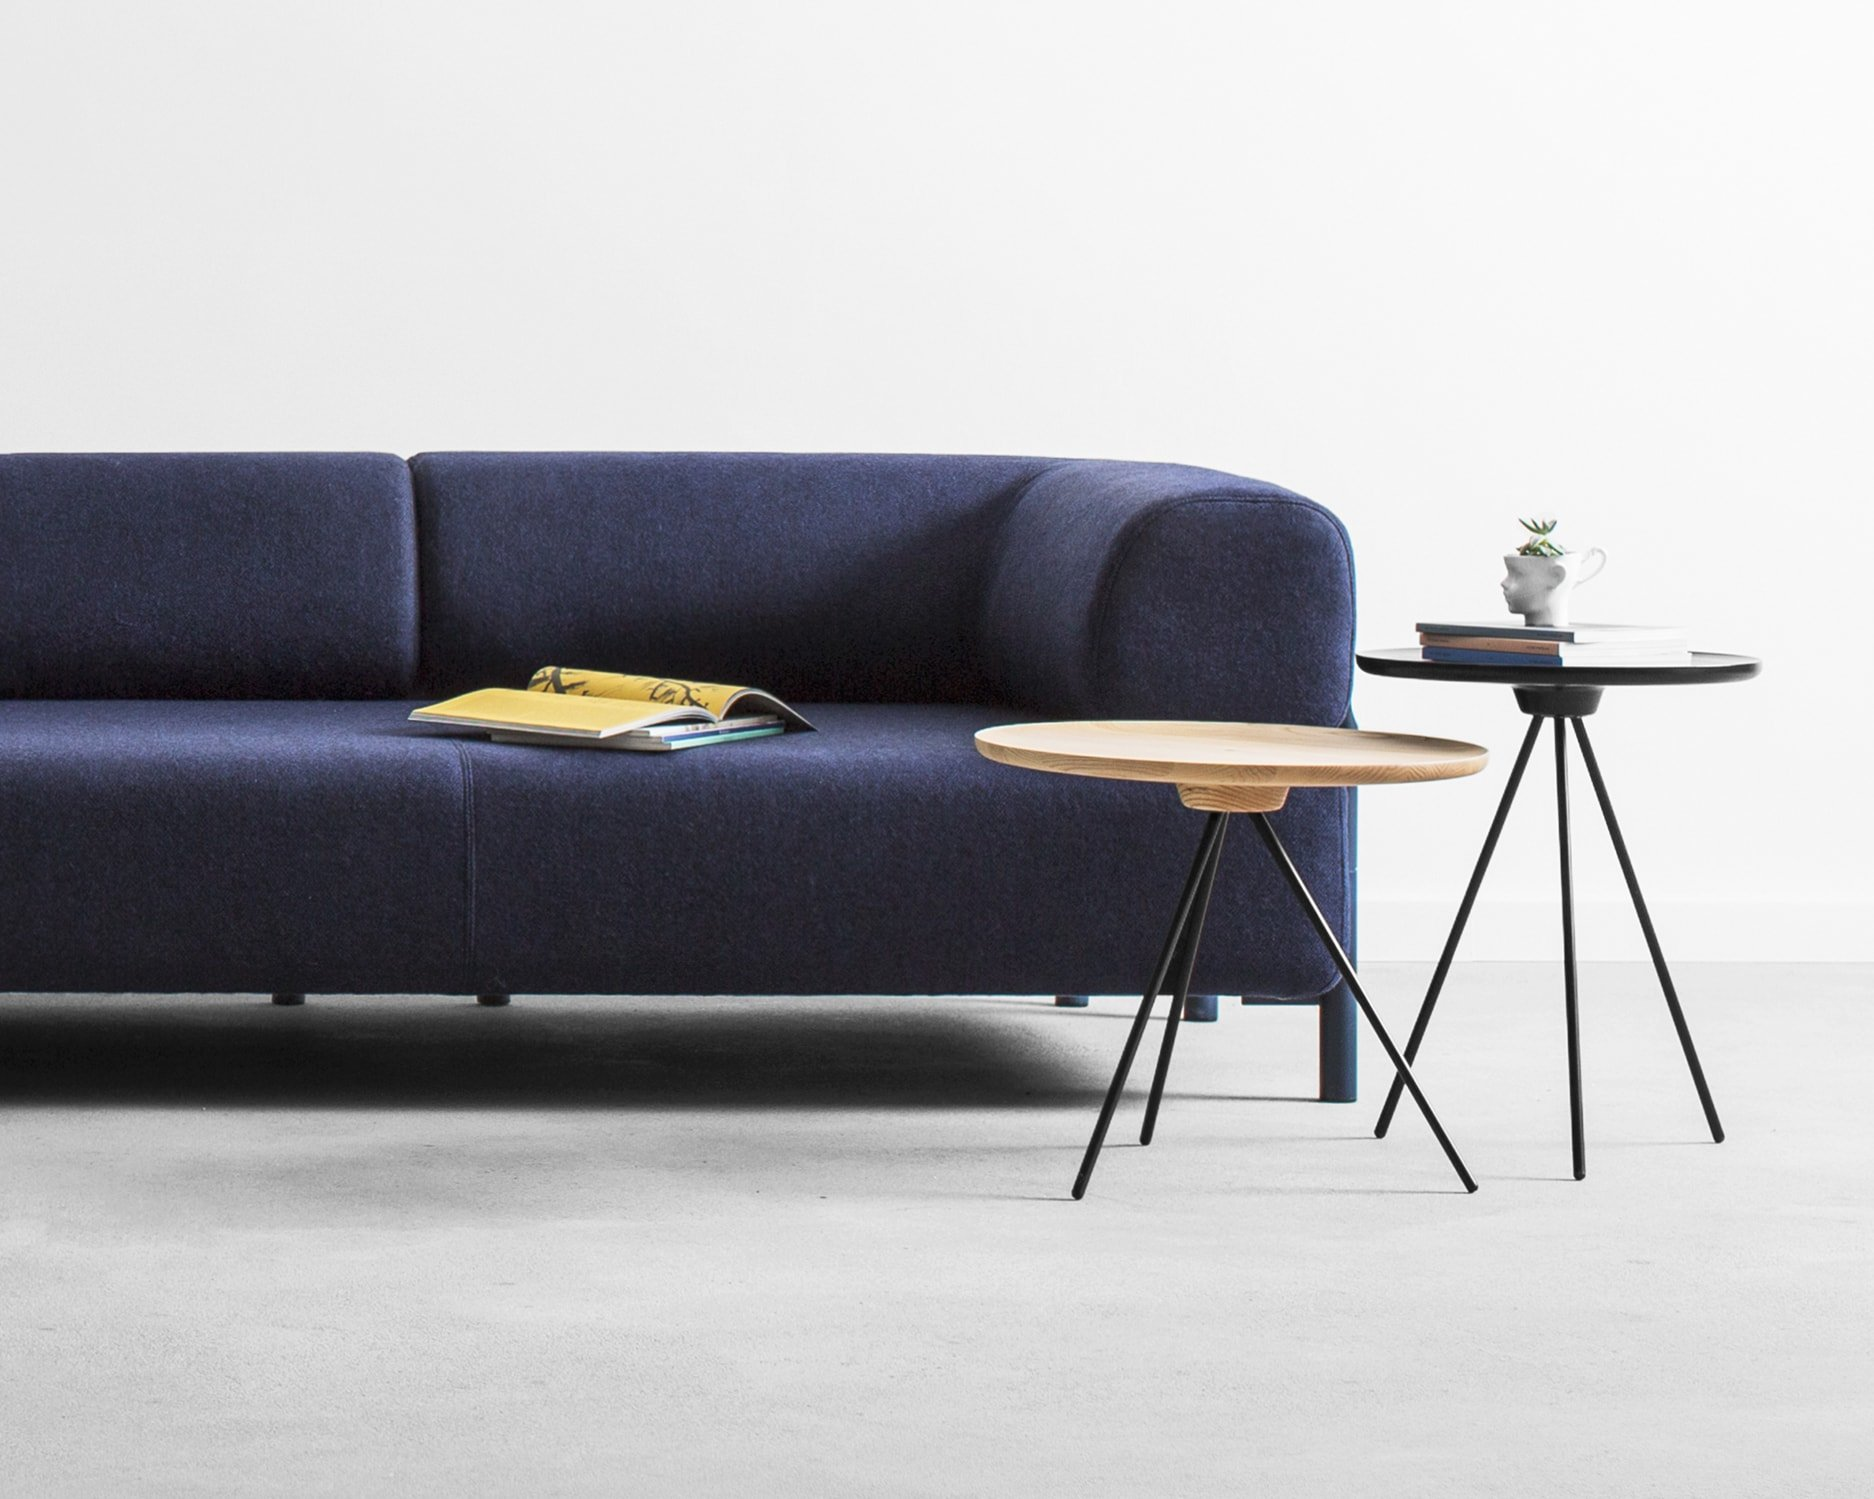 Sofa In A Box Companies Affordable Furniture Mid Range Stores That Won T Break The Bank